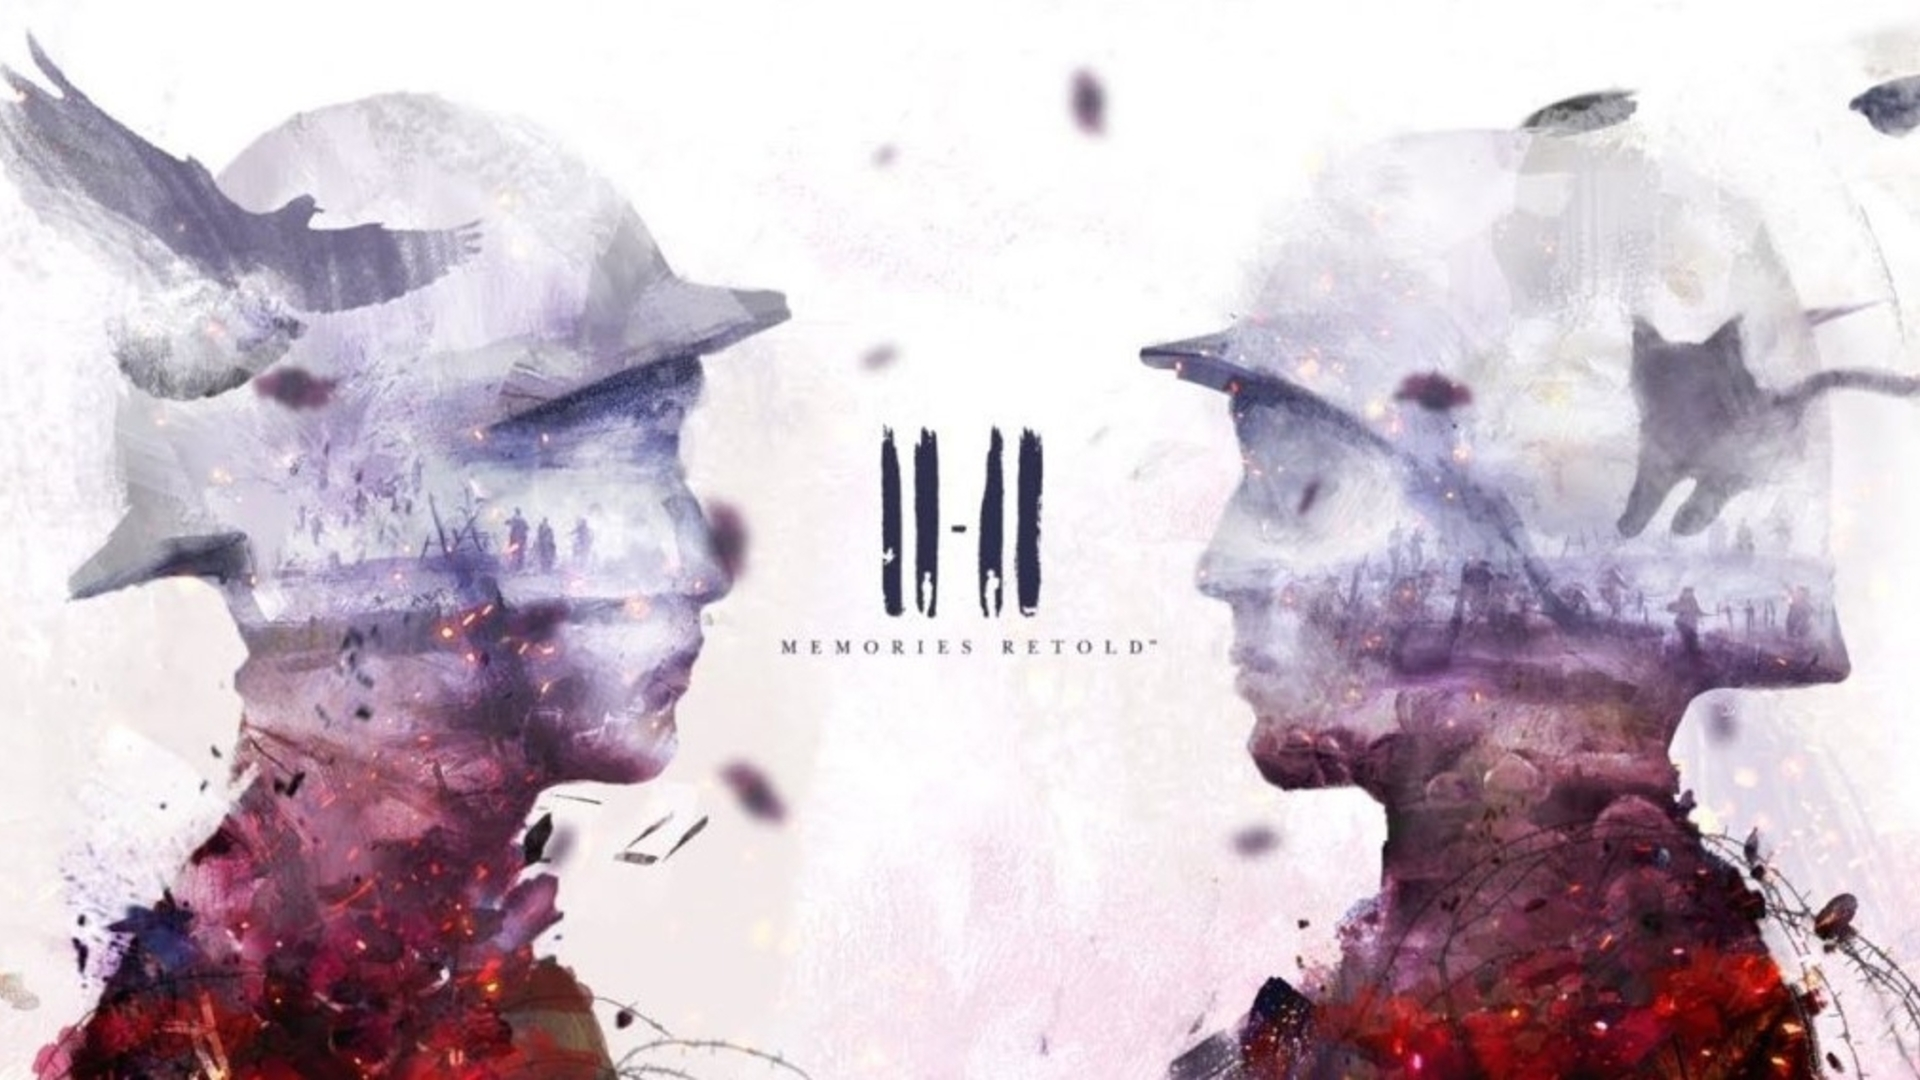 1111 Memories Retold Released Today Is A Ww1 Game About Normal People Pushed Into Extraordinary Events  E2 80 A2 Eurogamer Net